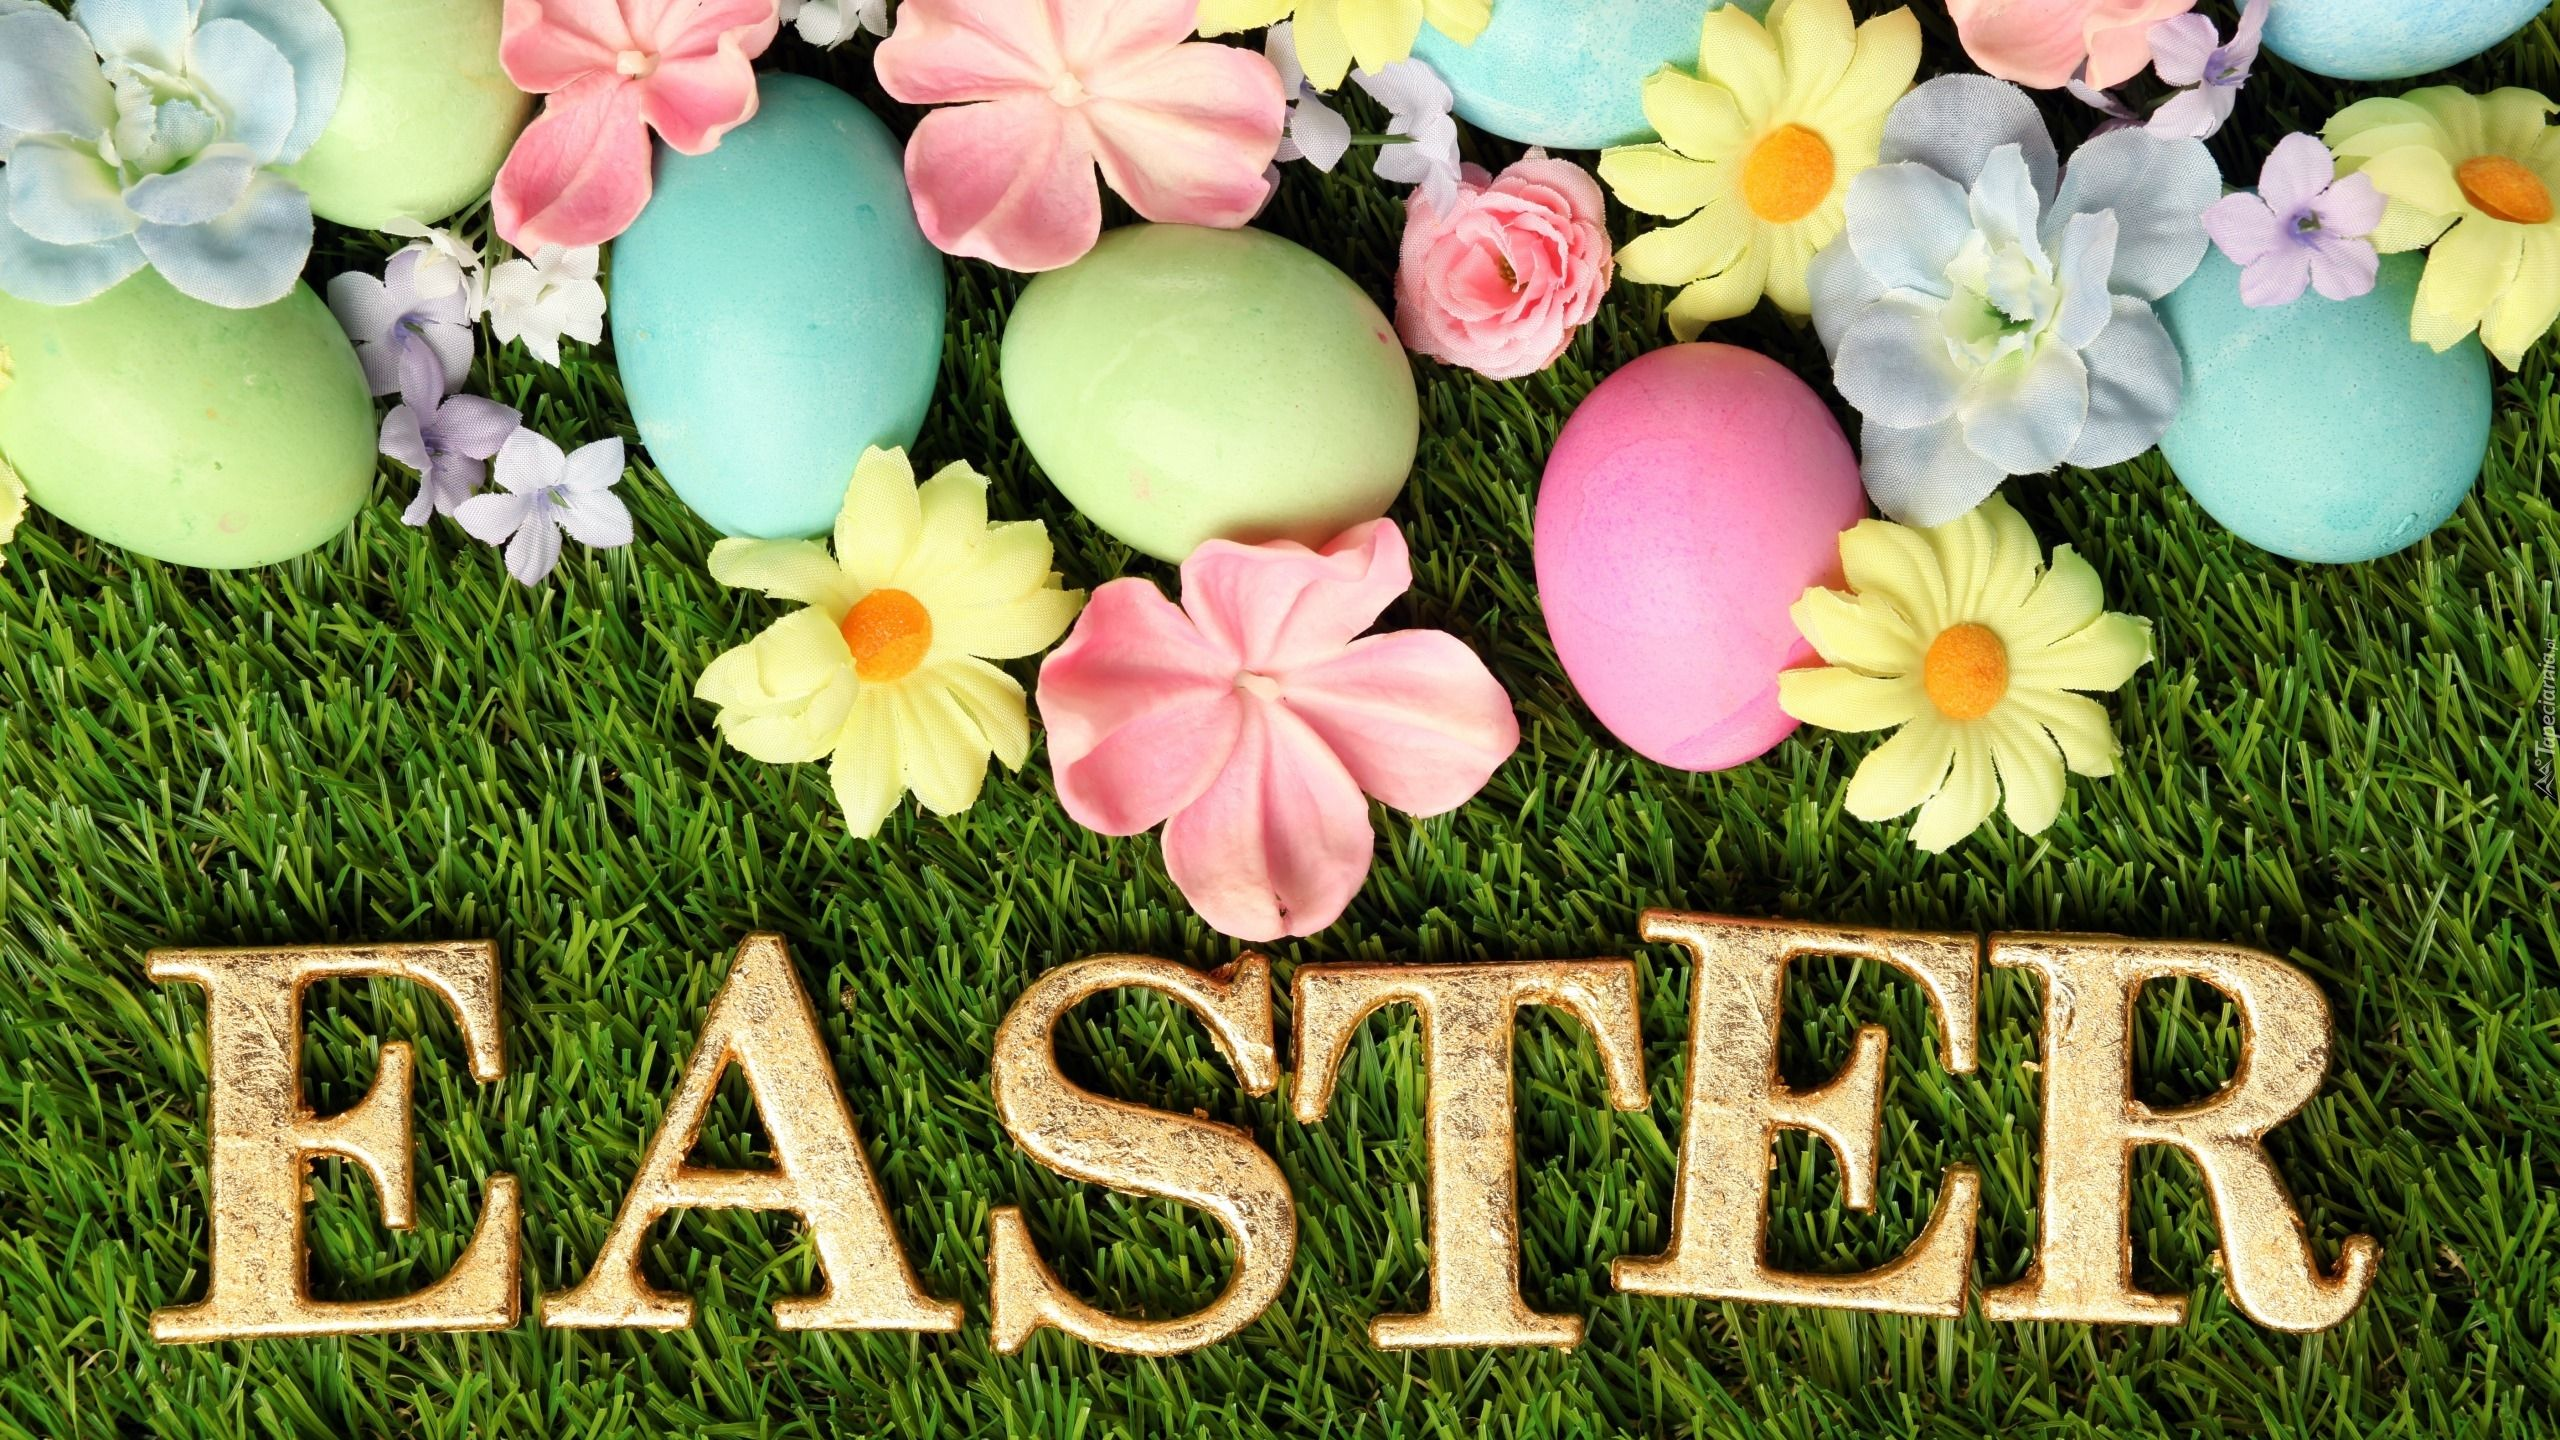 Wielkanoc Trawa Kwiaty Pisanki Napis Zlote Litery Easter Easter Backgrounds Easter Wallpaper Easter Pictures